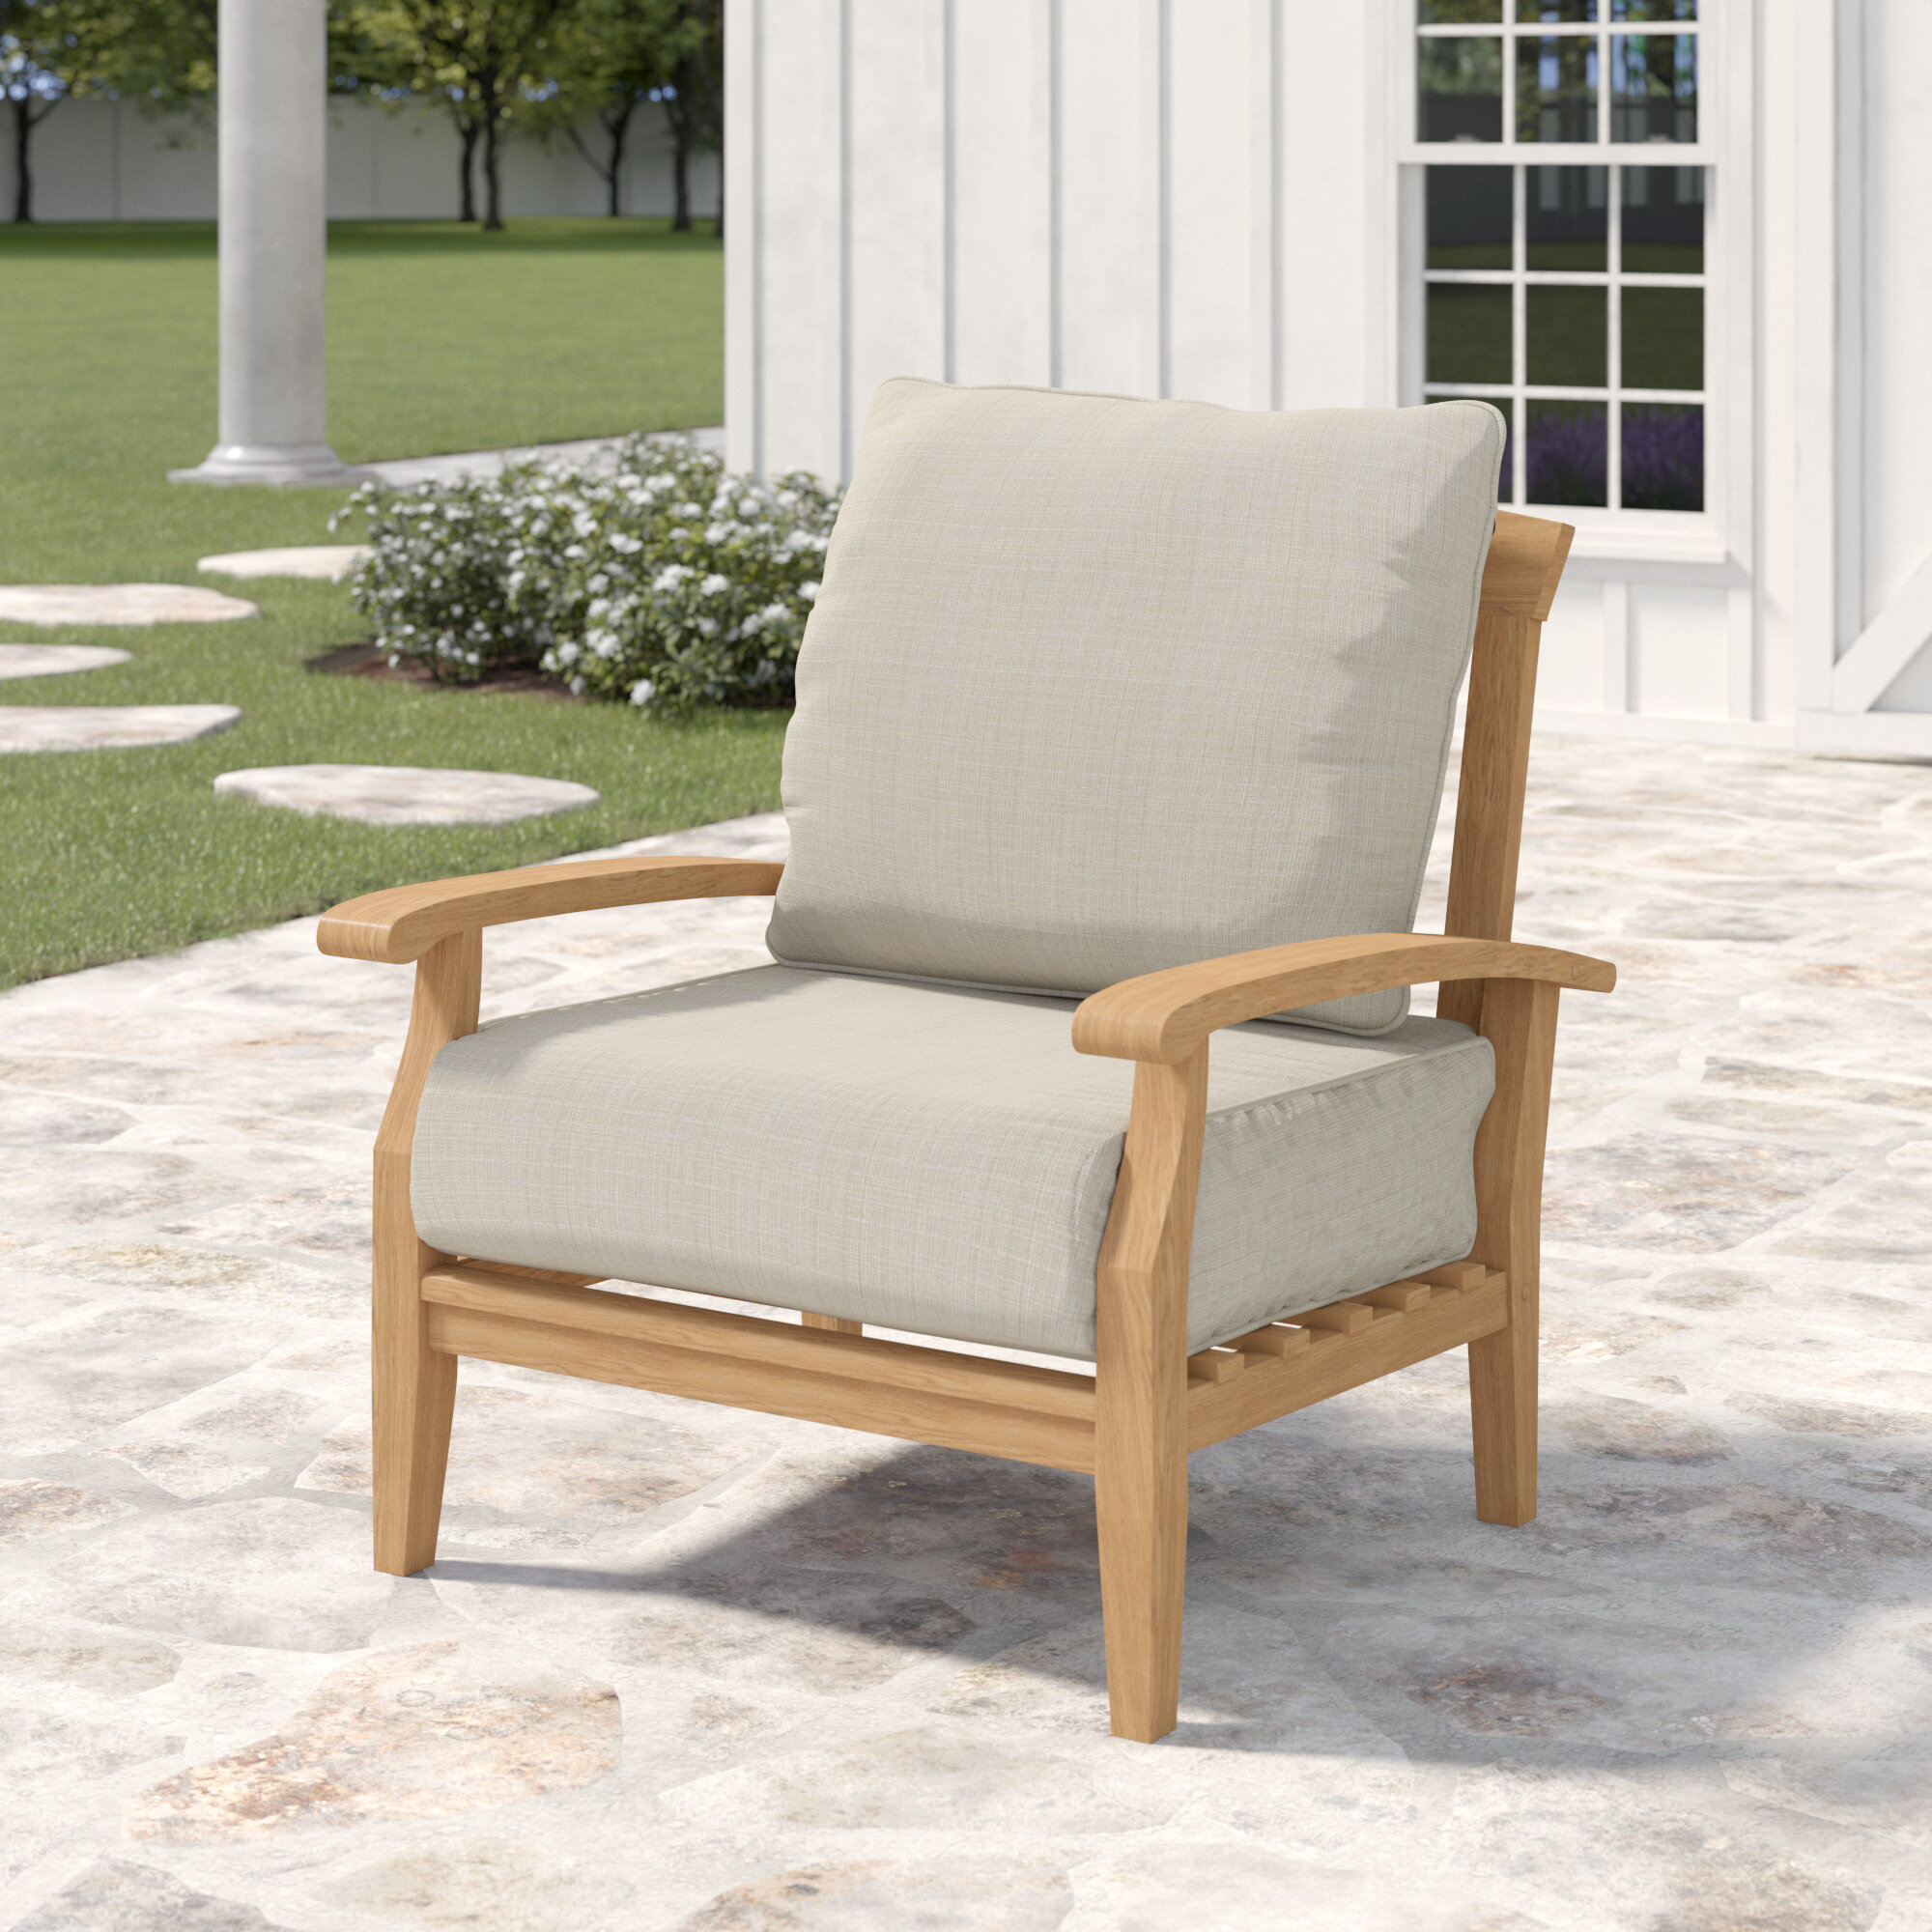 Fabulous Summerton Teak Patio Chair With Cushions Home Interior And Landscaping Ologienasavecom